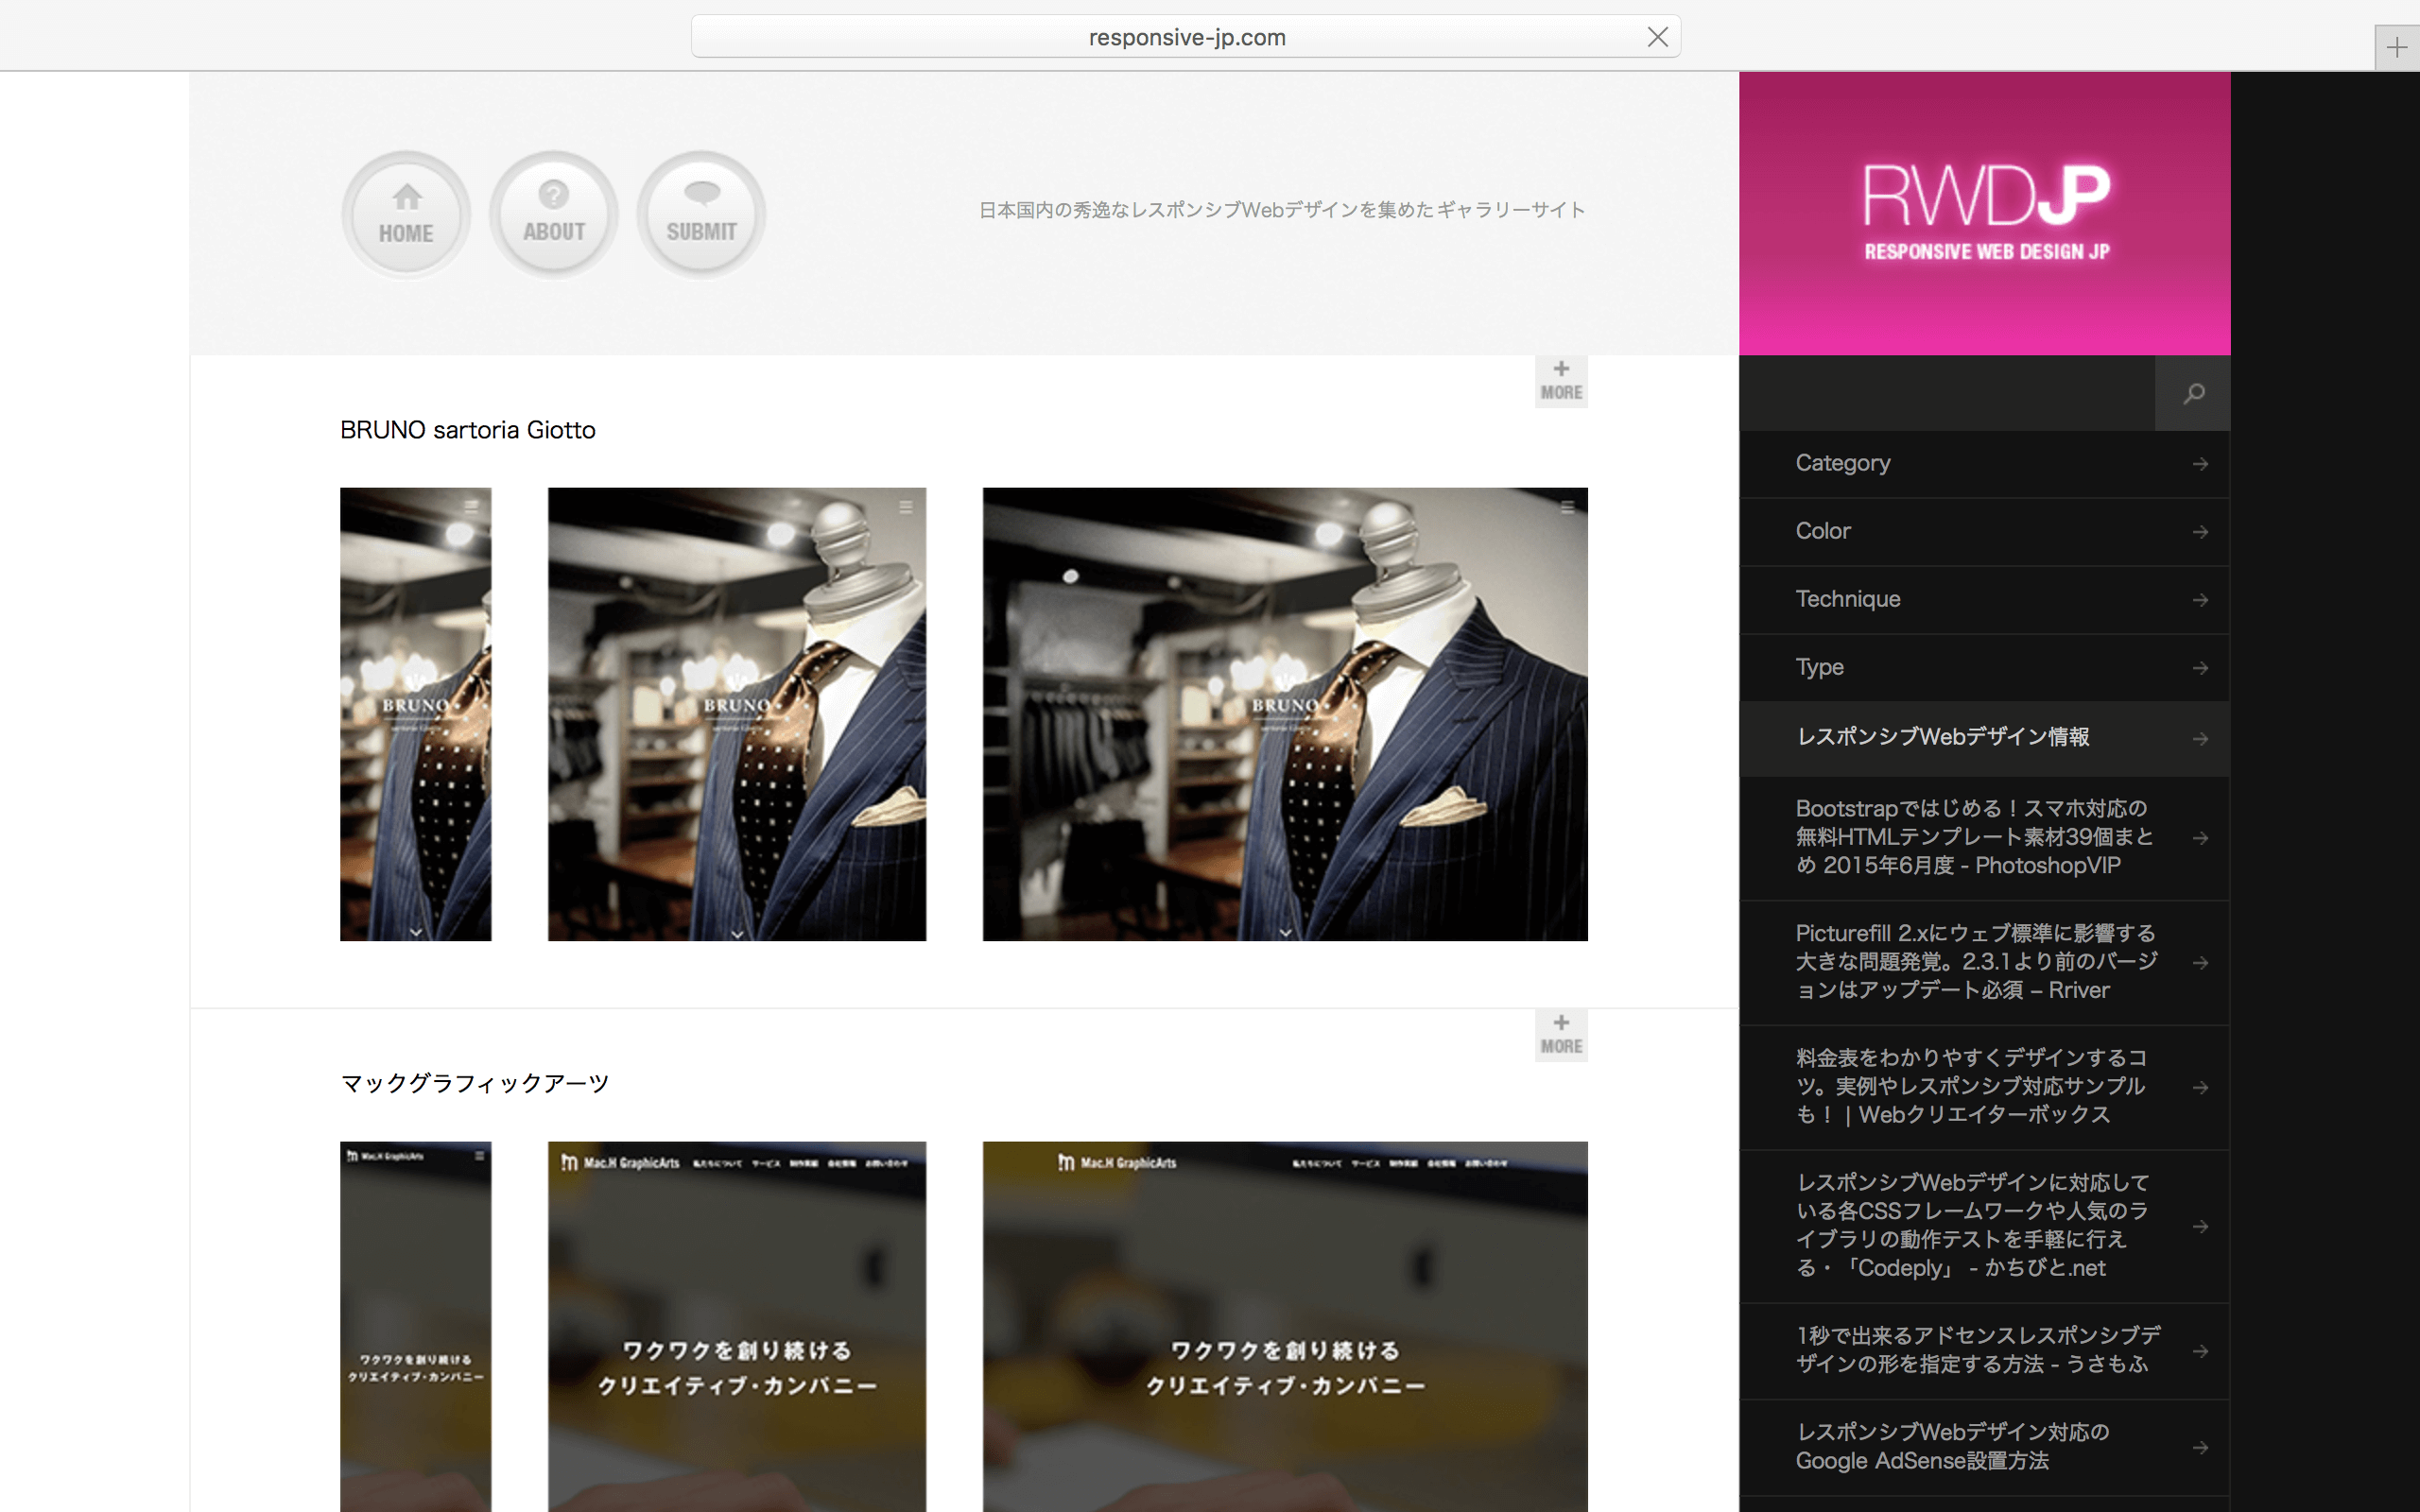 Web Design Gallery : RESPONSIVE WEB DESIGN JP